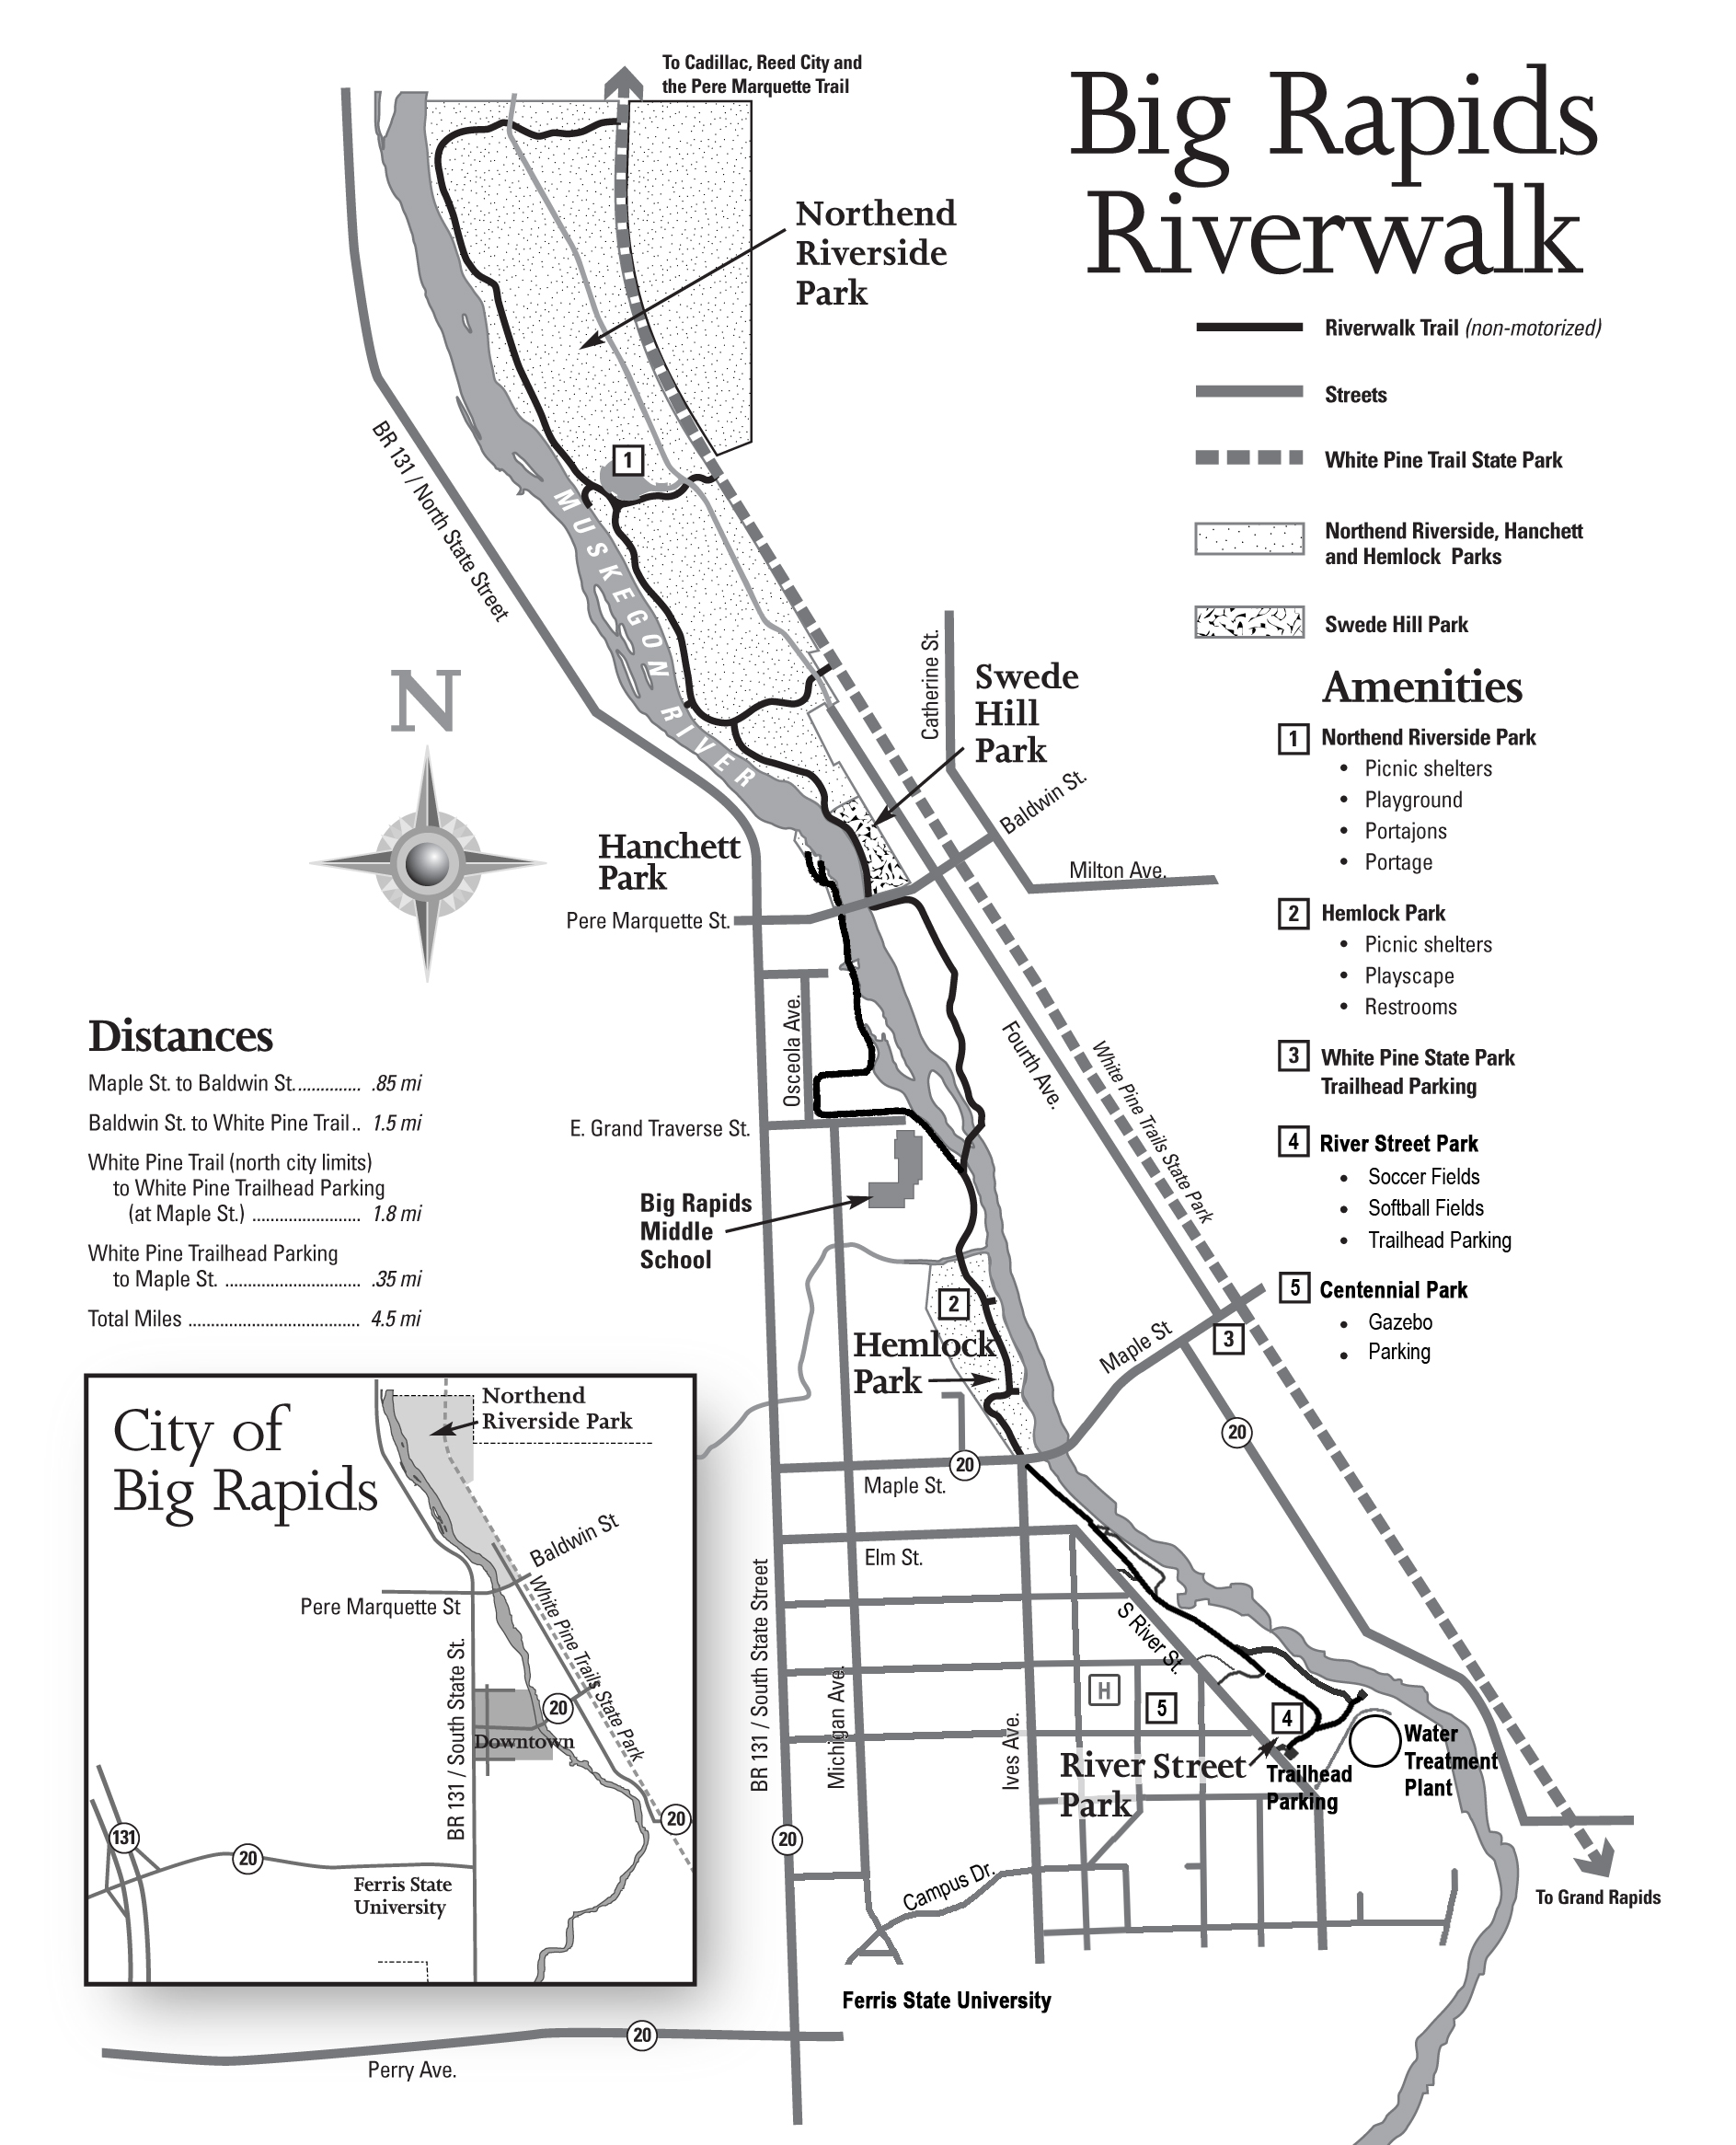 Riverwalk is a linear park that runs on both the east and